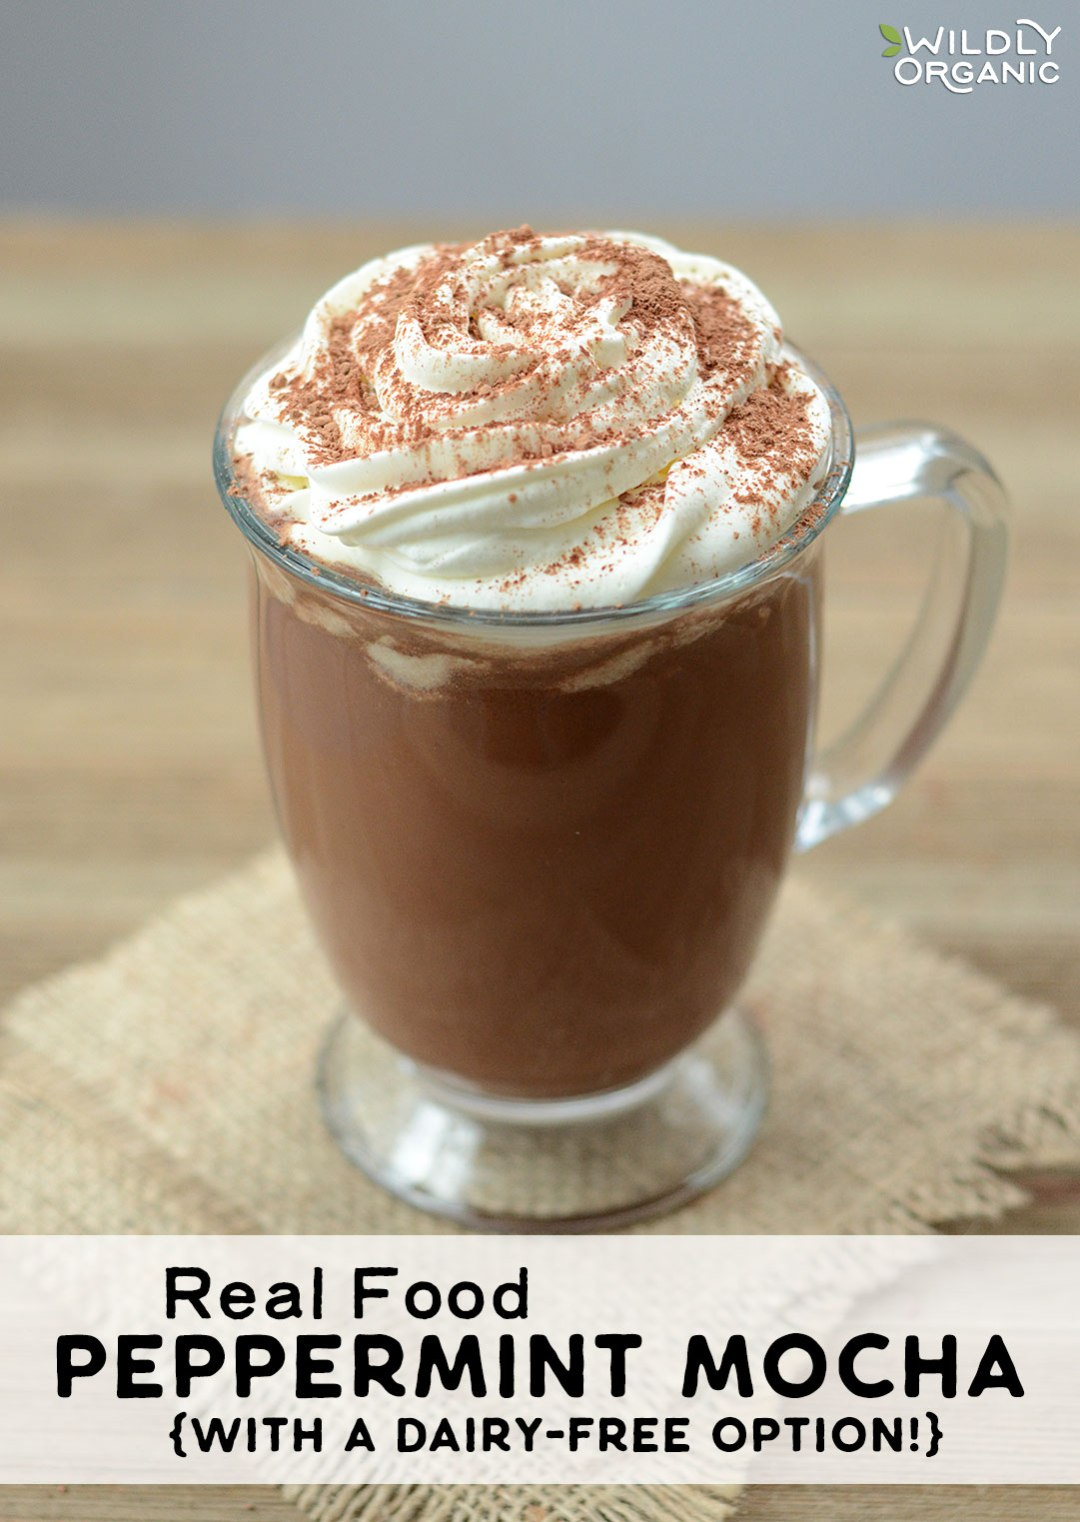 Can a Real Food Peppermint Mocha really taste as good as (or better than) the well-loved version from one of American's favorite coffee joints? You betcha! This recipe is loaded with antioxidants, healthy fats, and amazing flavors without the artificial additives and refined sugar, plus it has a dairy-free option!